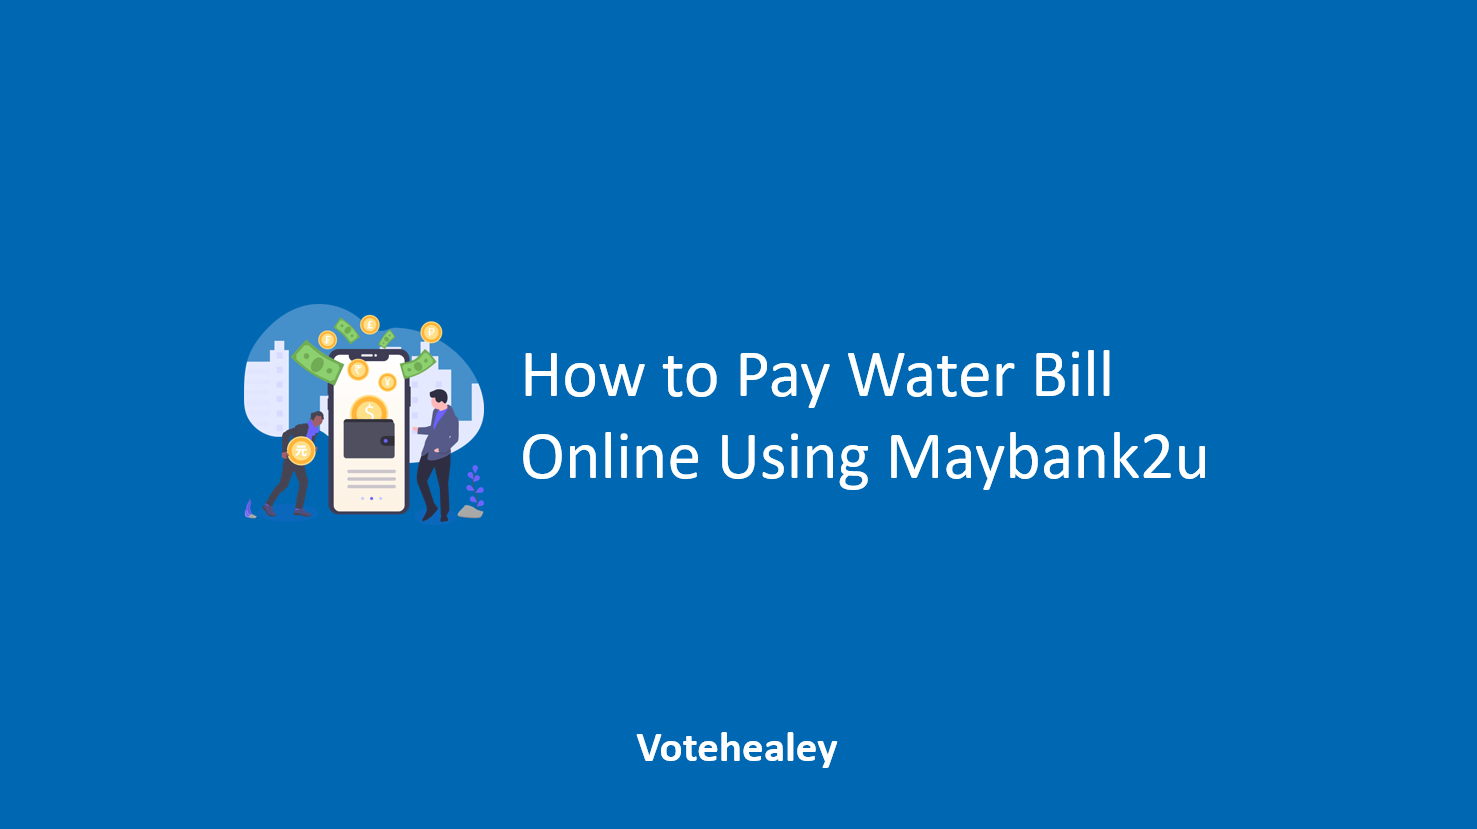 How to Pay Water Bill Online Using Maybank2u